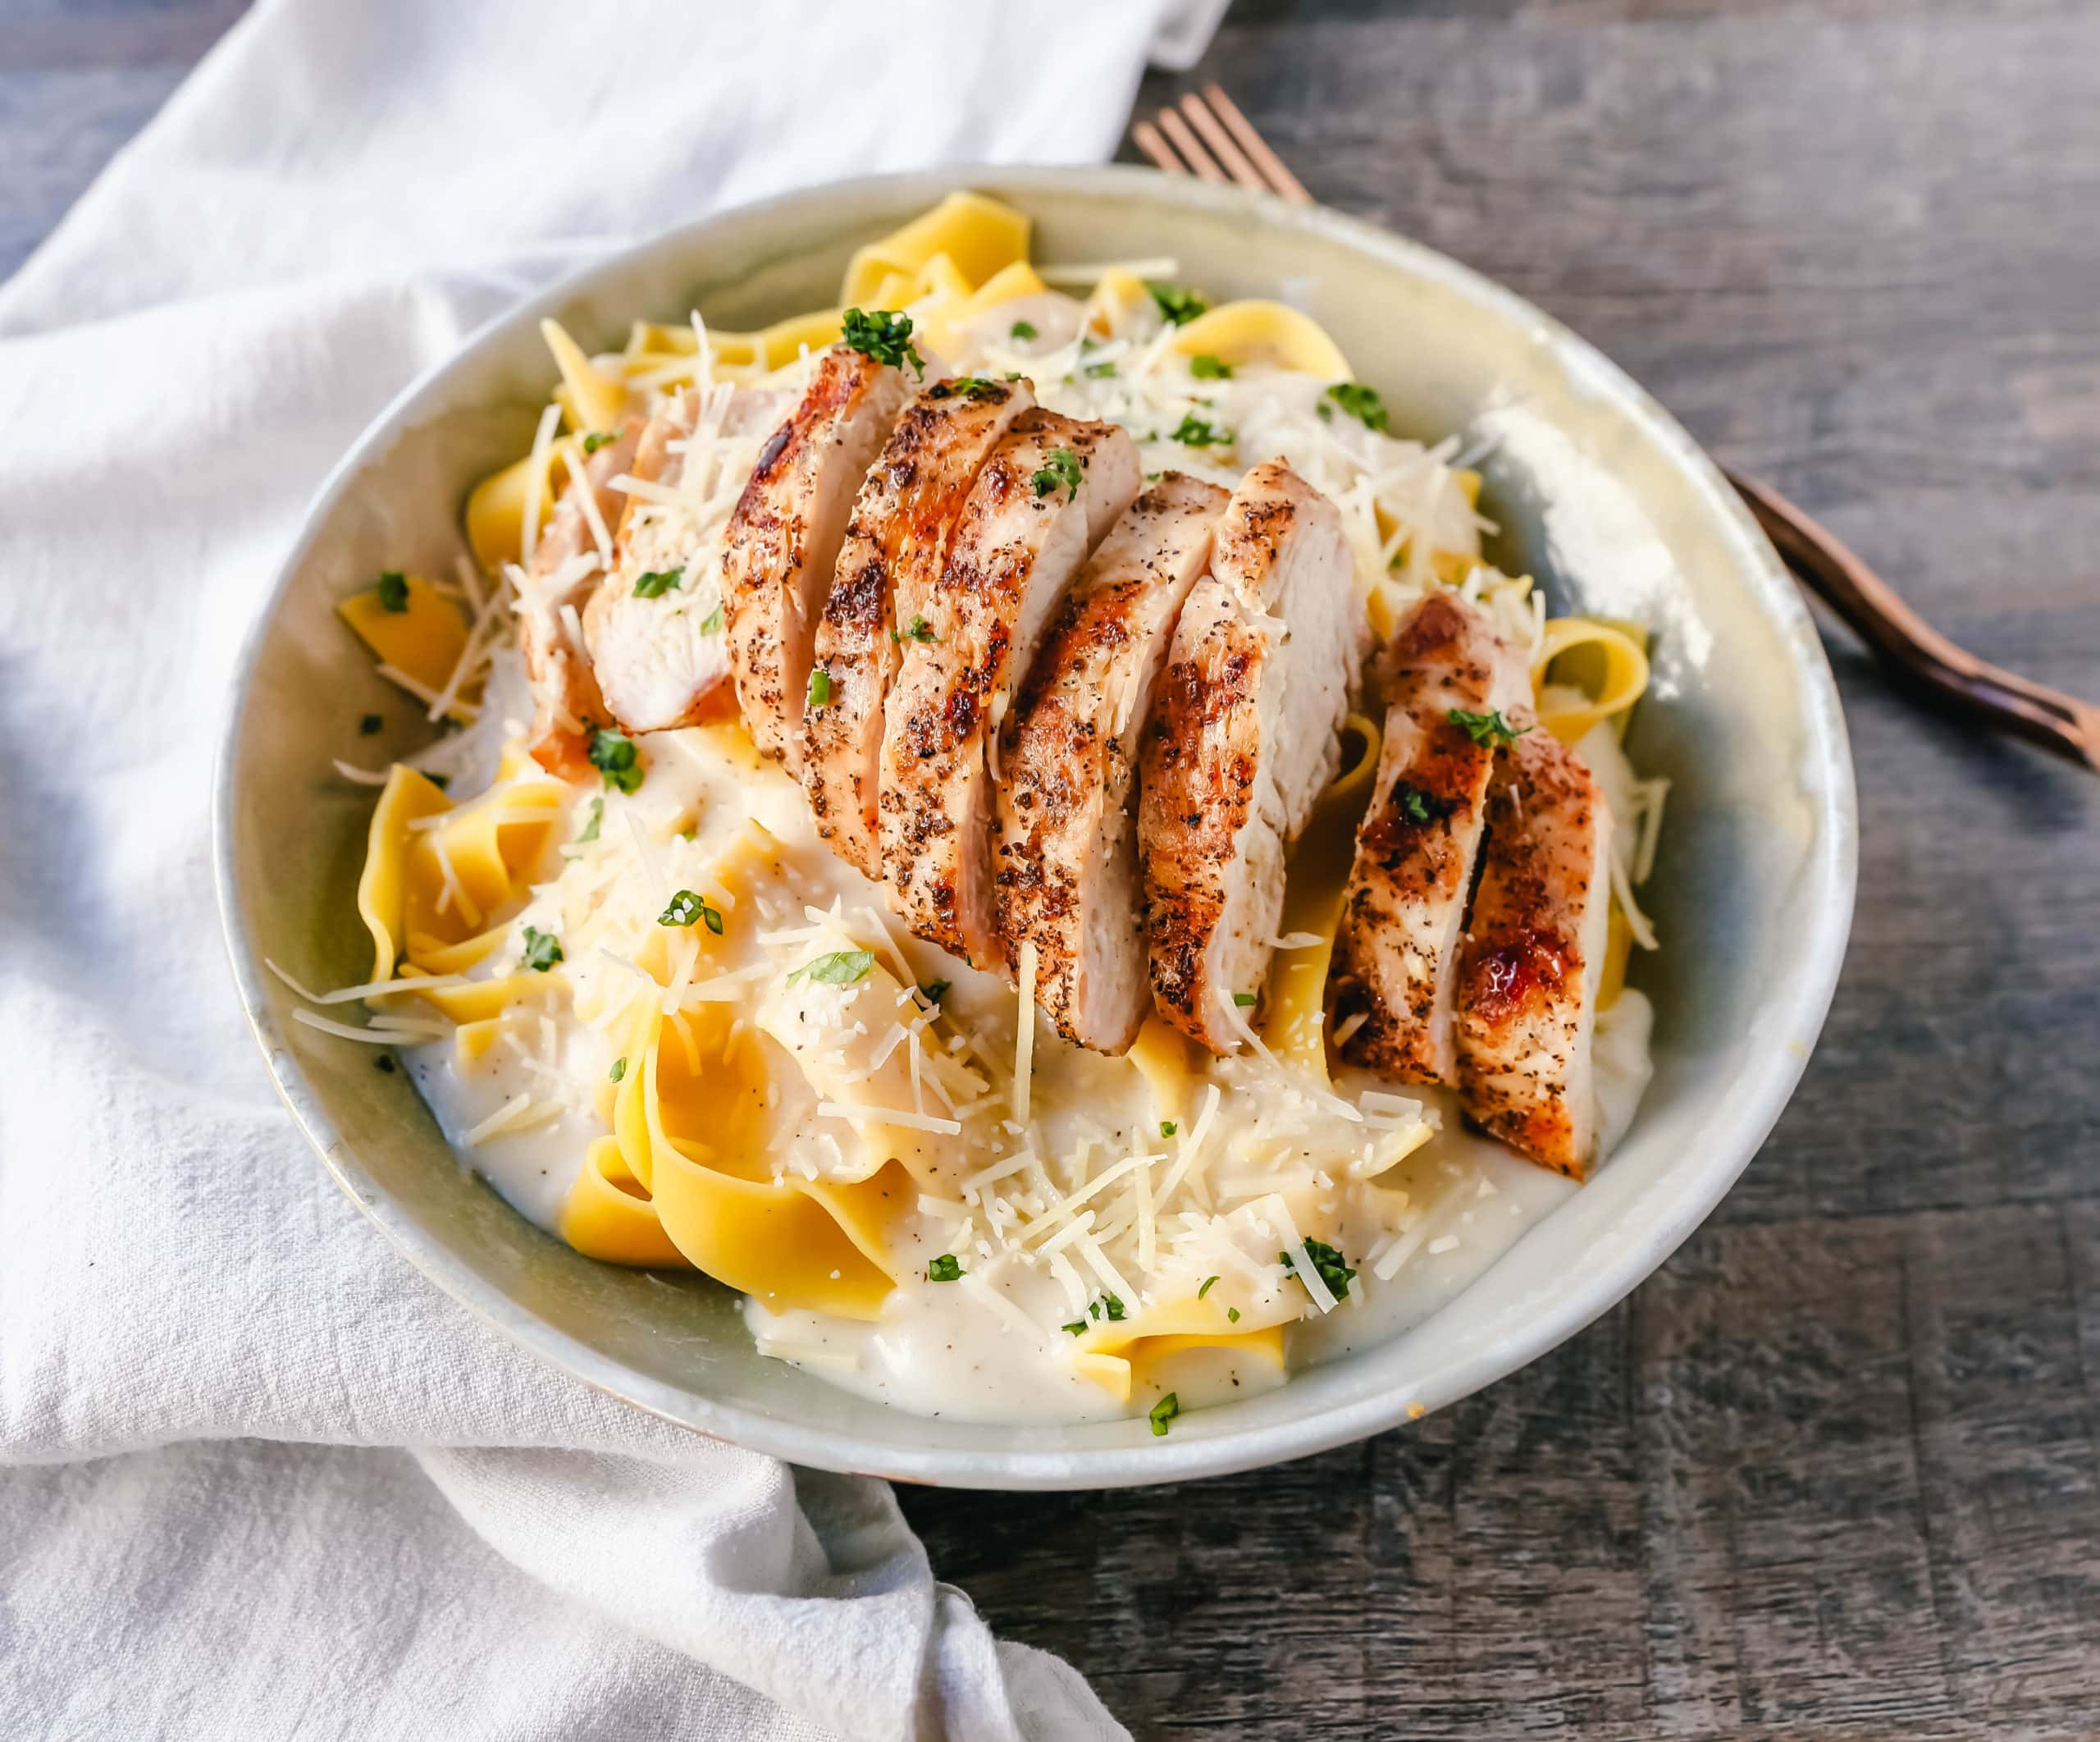 Skinny Low-Fat Chicken Fettuccine Alfredo All of the flavor of Chicken Fettuccine Alfredo without all of the fat and calories! Lean grilled chicken on top of low-fat alfredo sauce tossed with fettuccine noodles.www.modernhoney.com #lowfat #chicken #pasta